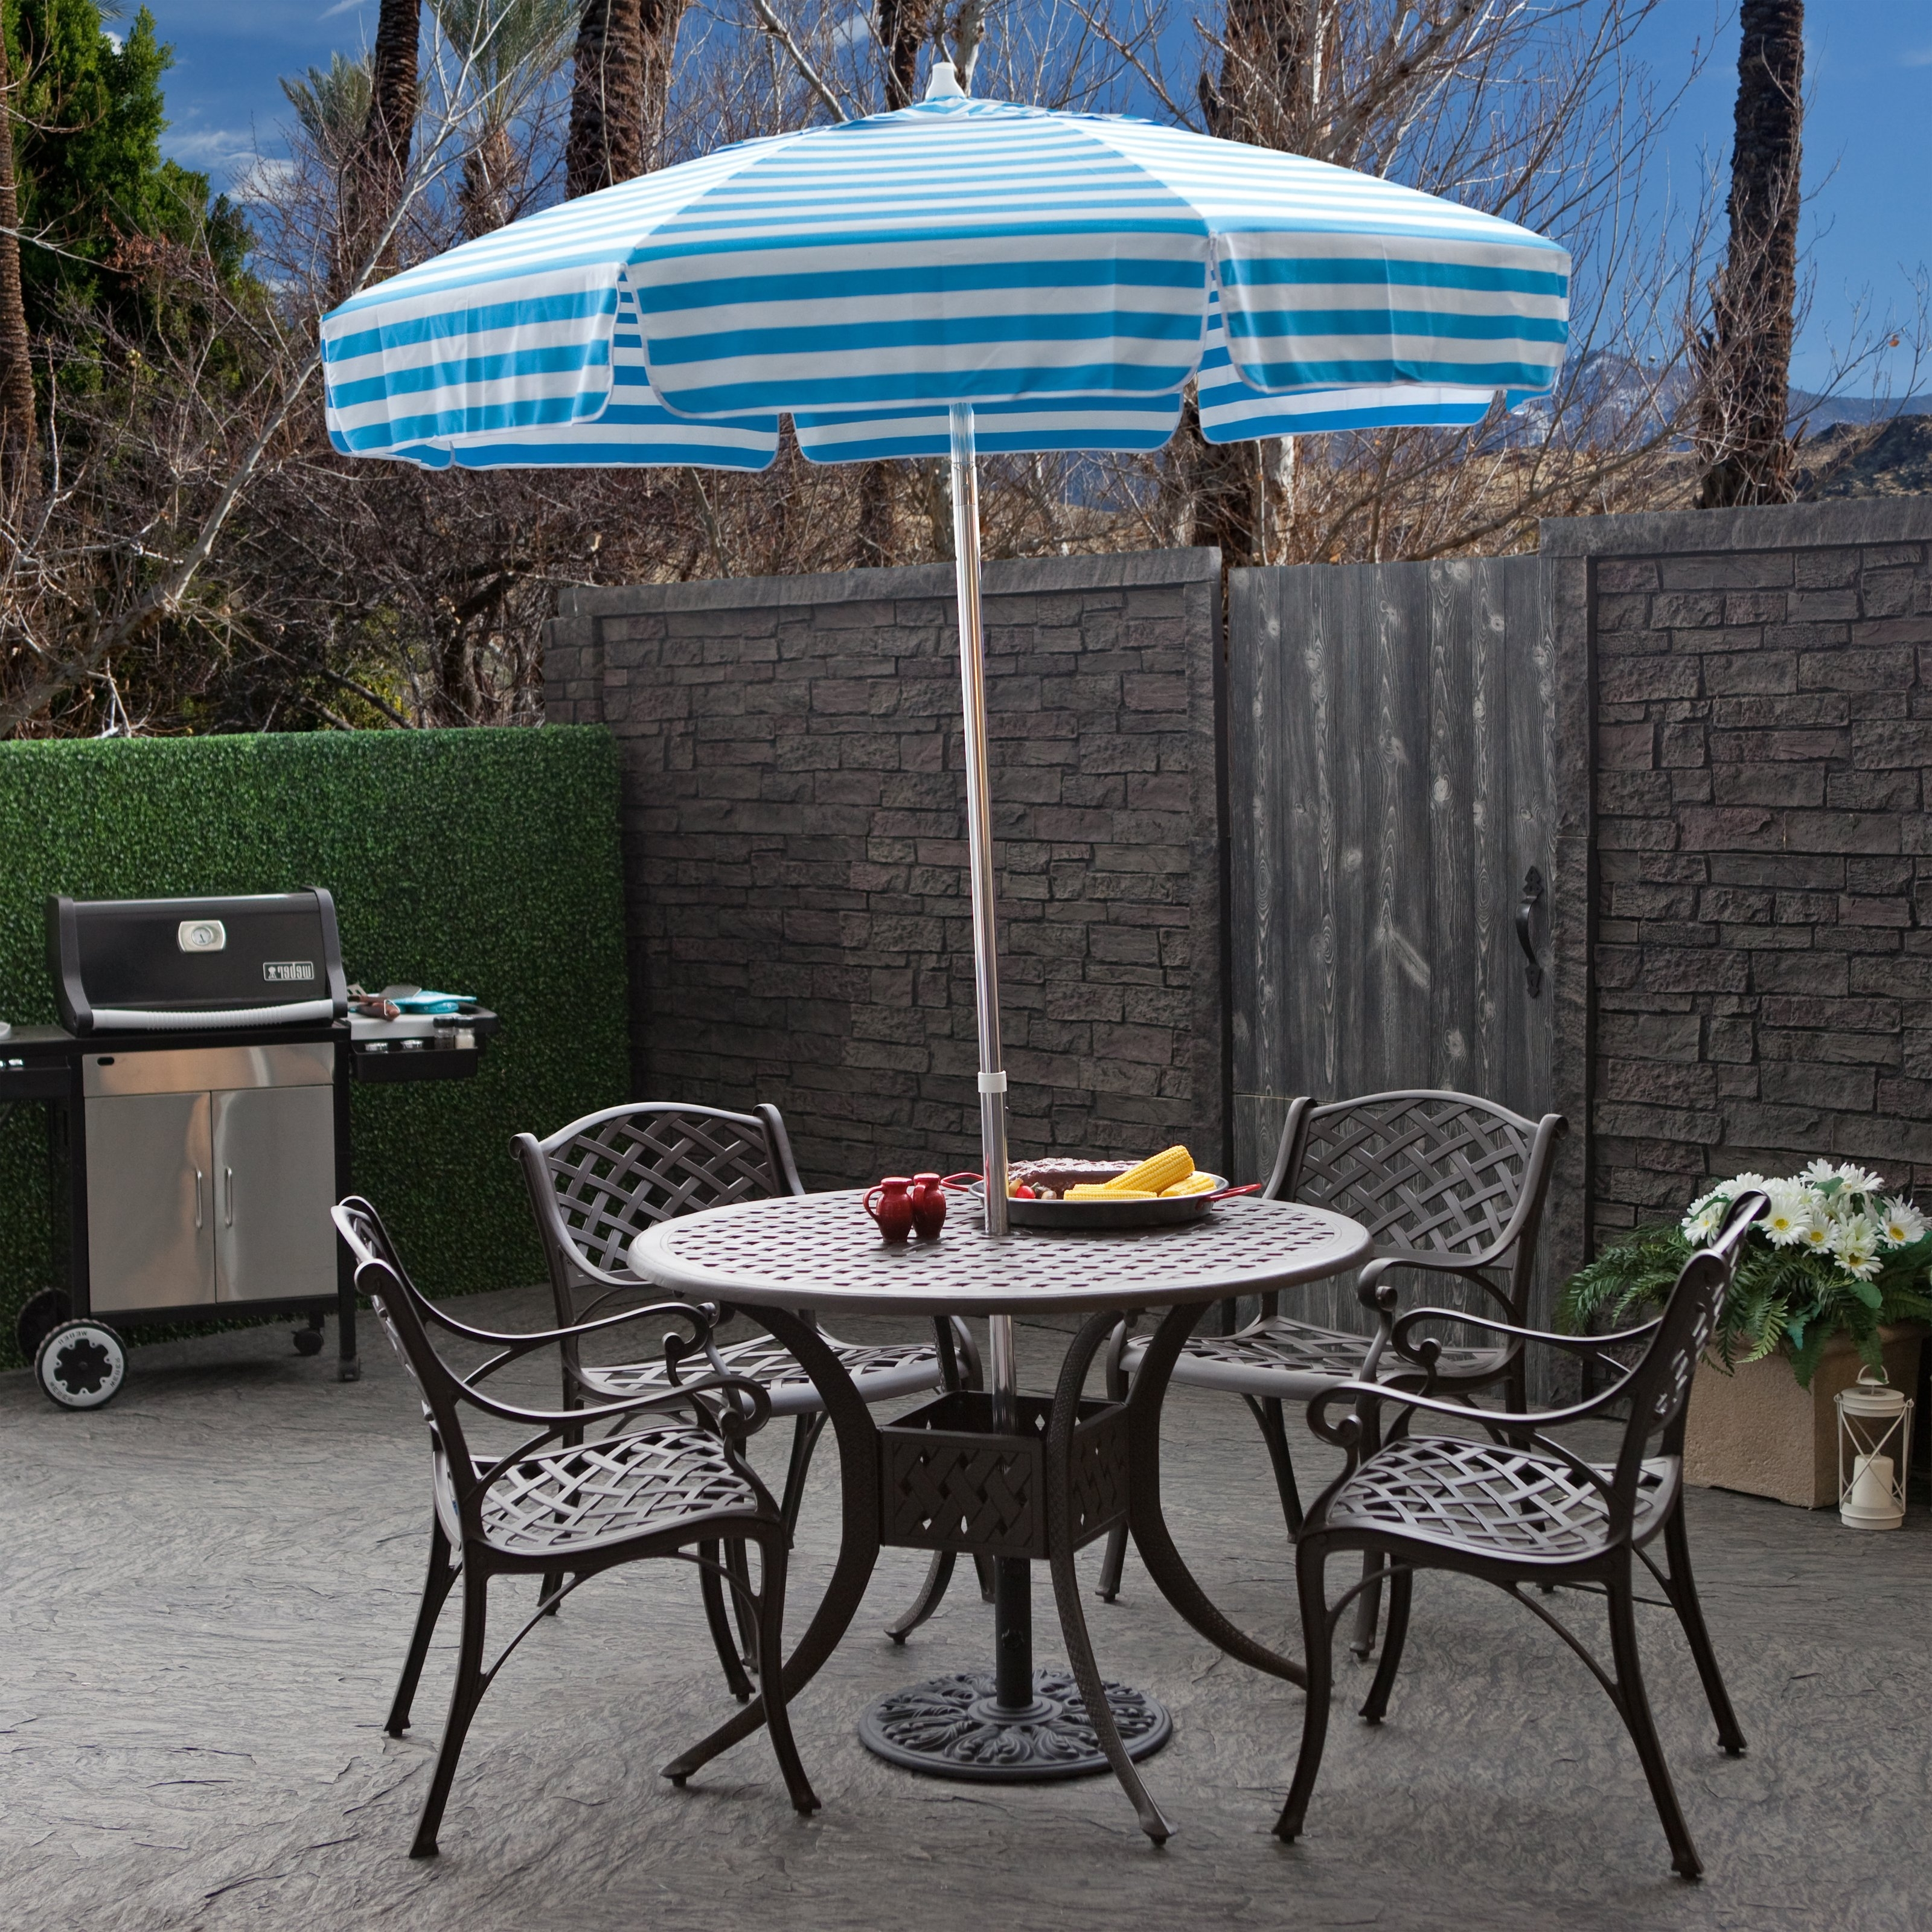 Incredible Patio Table Umbrellas Destinationgear 6 Ft Aluminum Within Most Recent Small Patio Tables With Umbrellas Hole (Gallery 2 of 20)